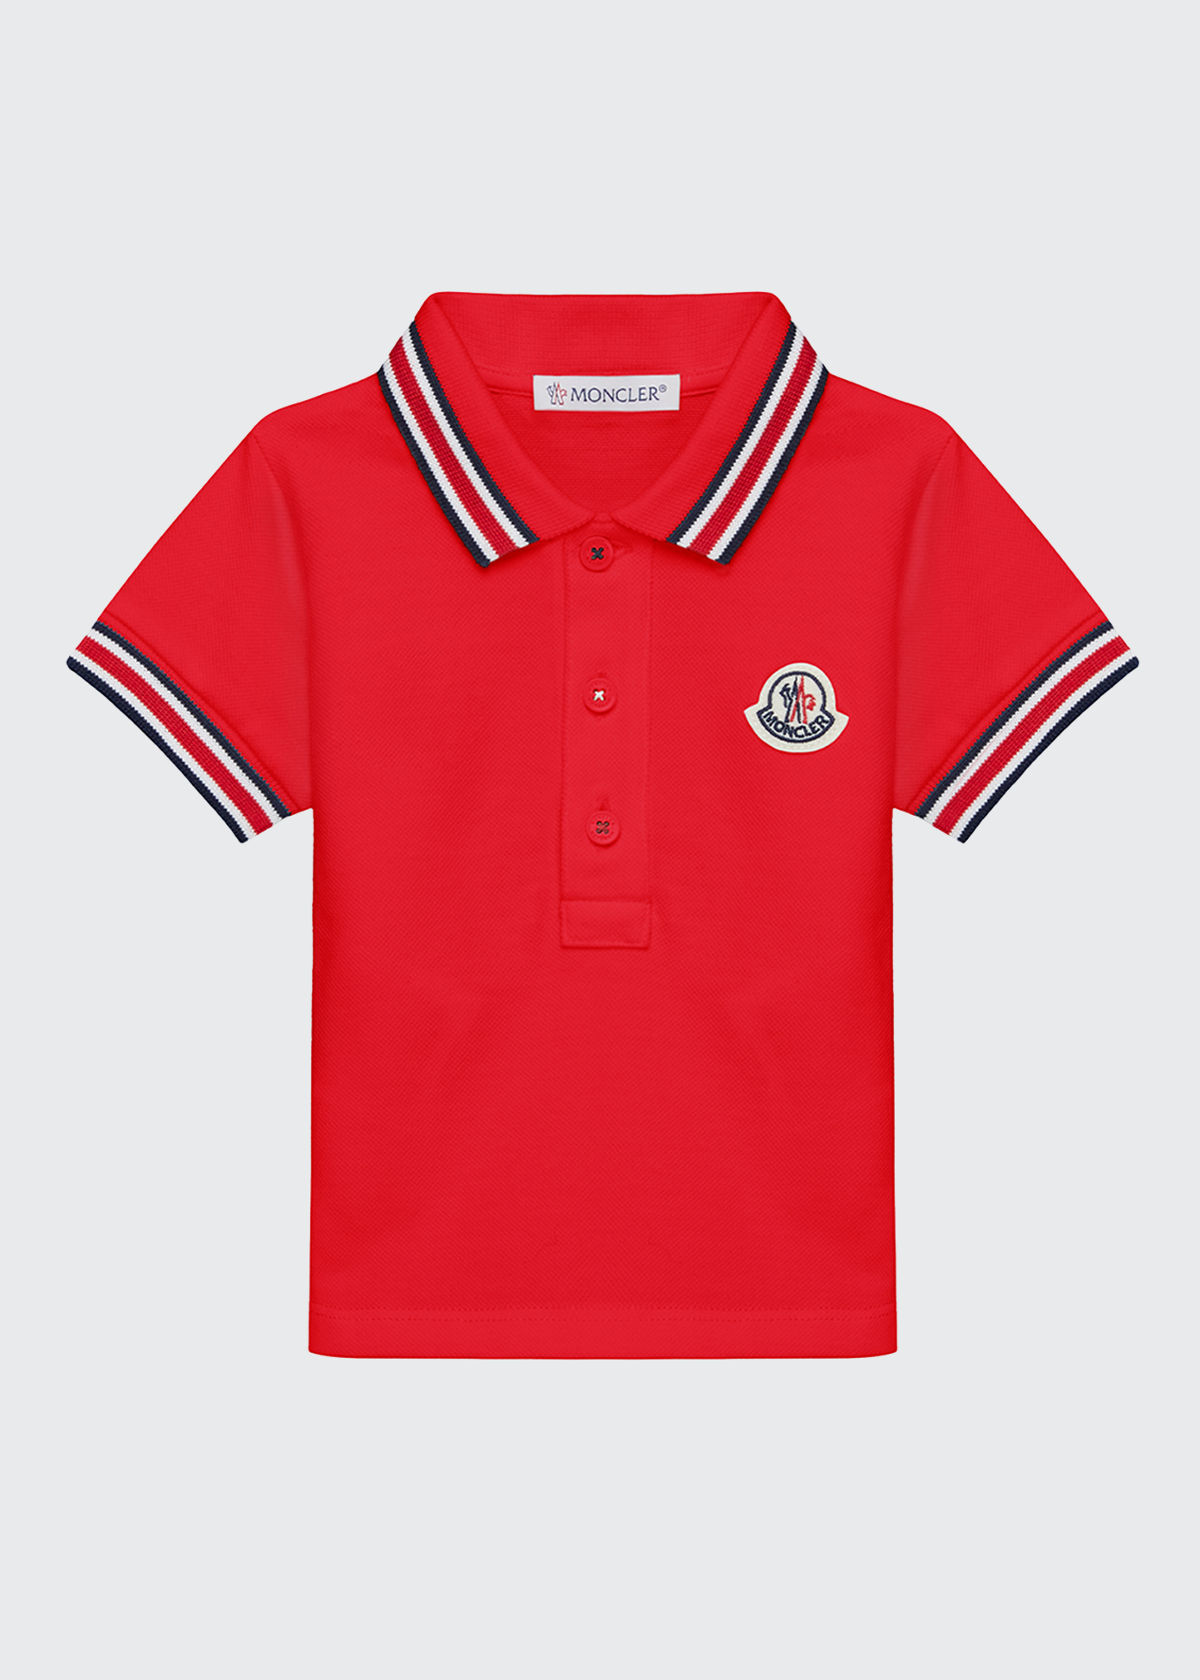 Moncler BOY'S STRIPED TRIM COTTON LOGO POLO SHIRT